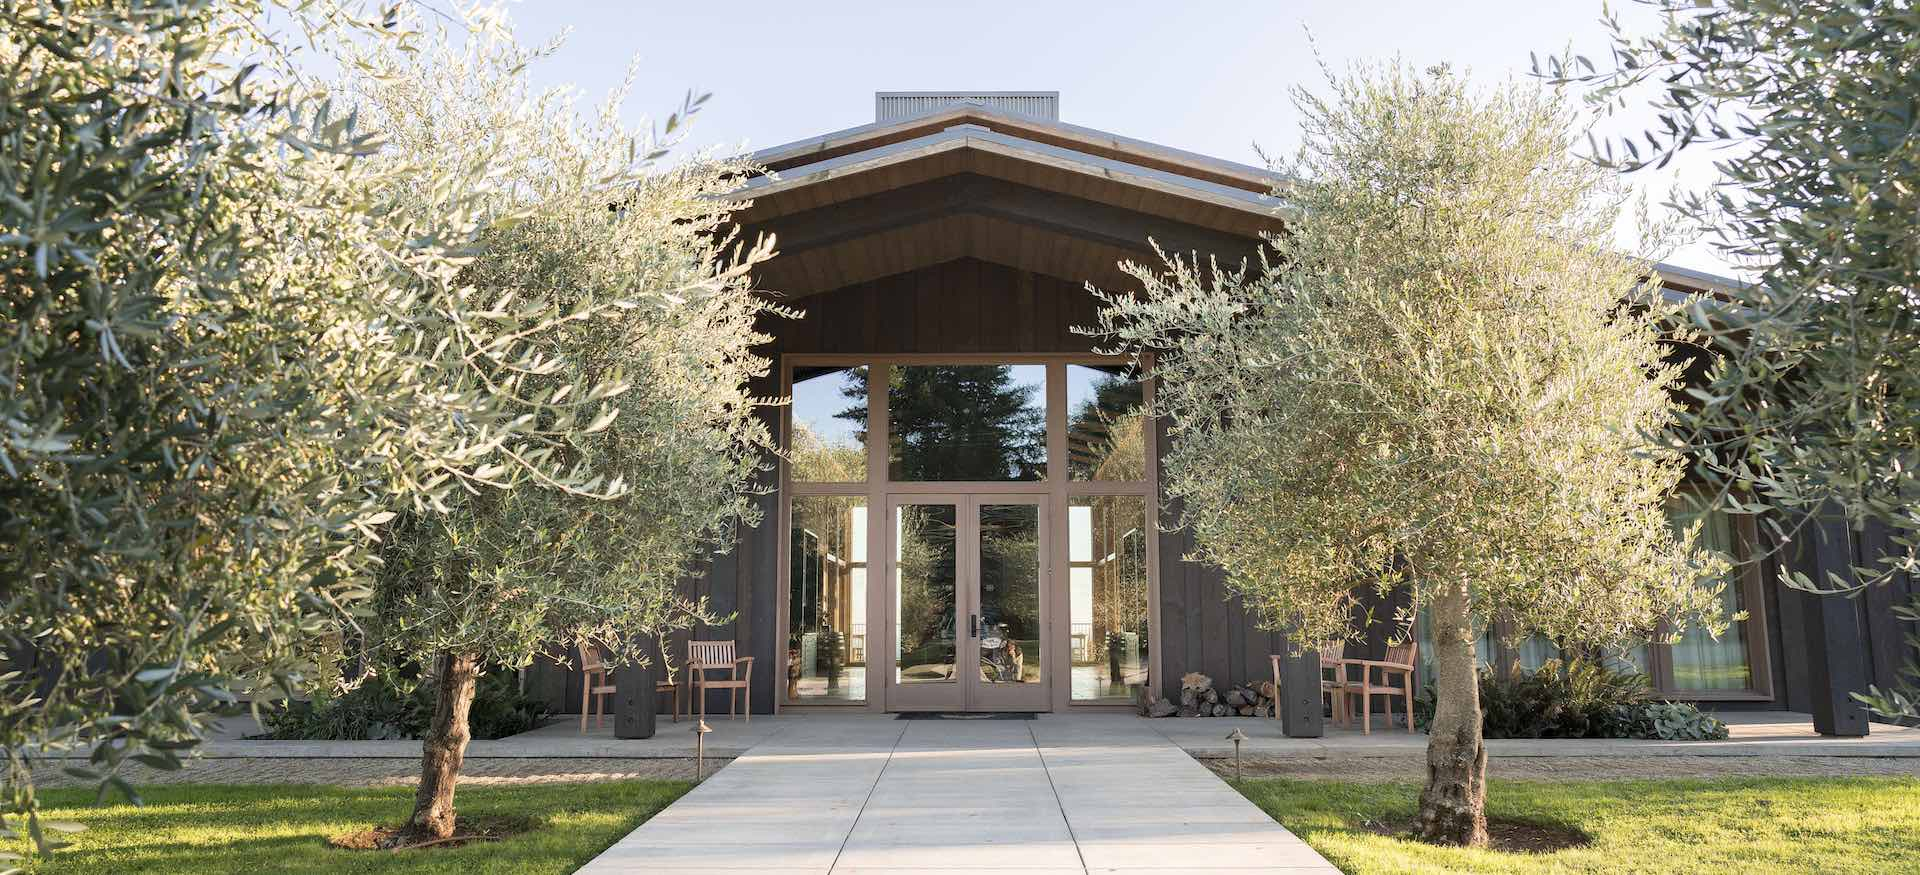 Experience the Beauty of the Willamette Valley